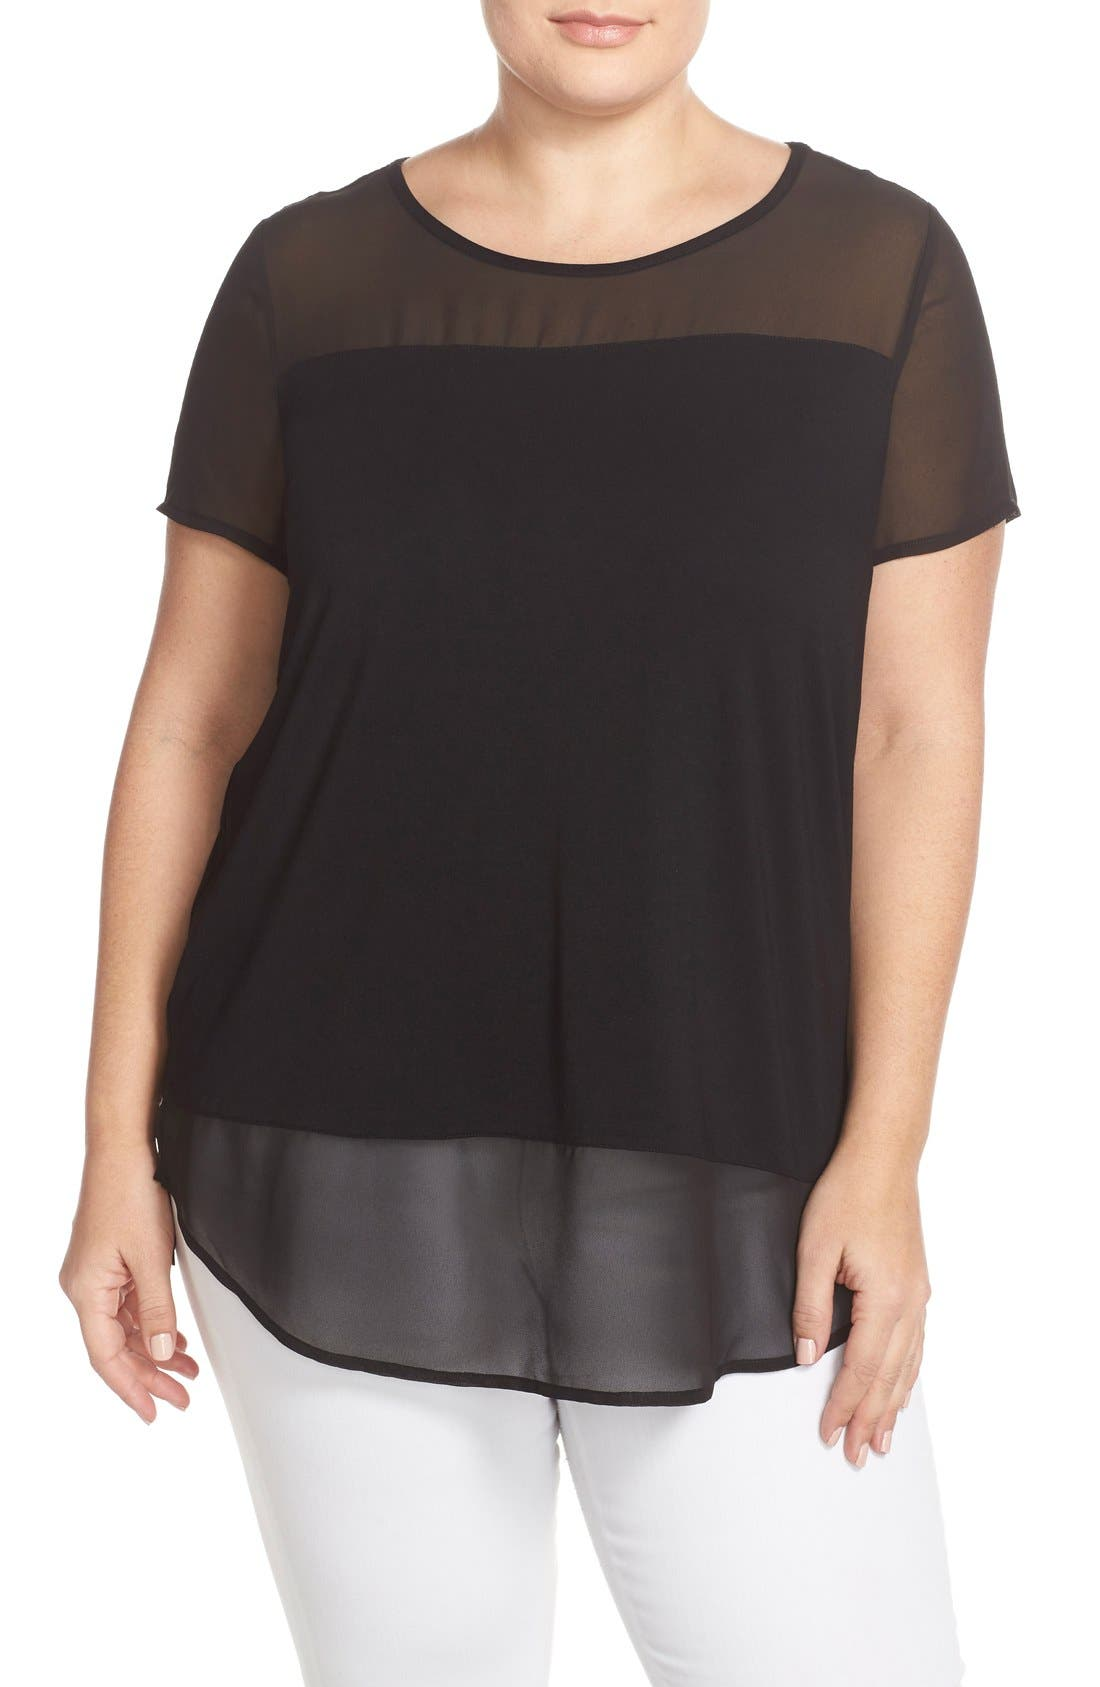 Vince Camuto Chiffon Inset Knit Top (Plus Size)